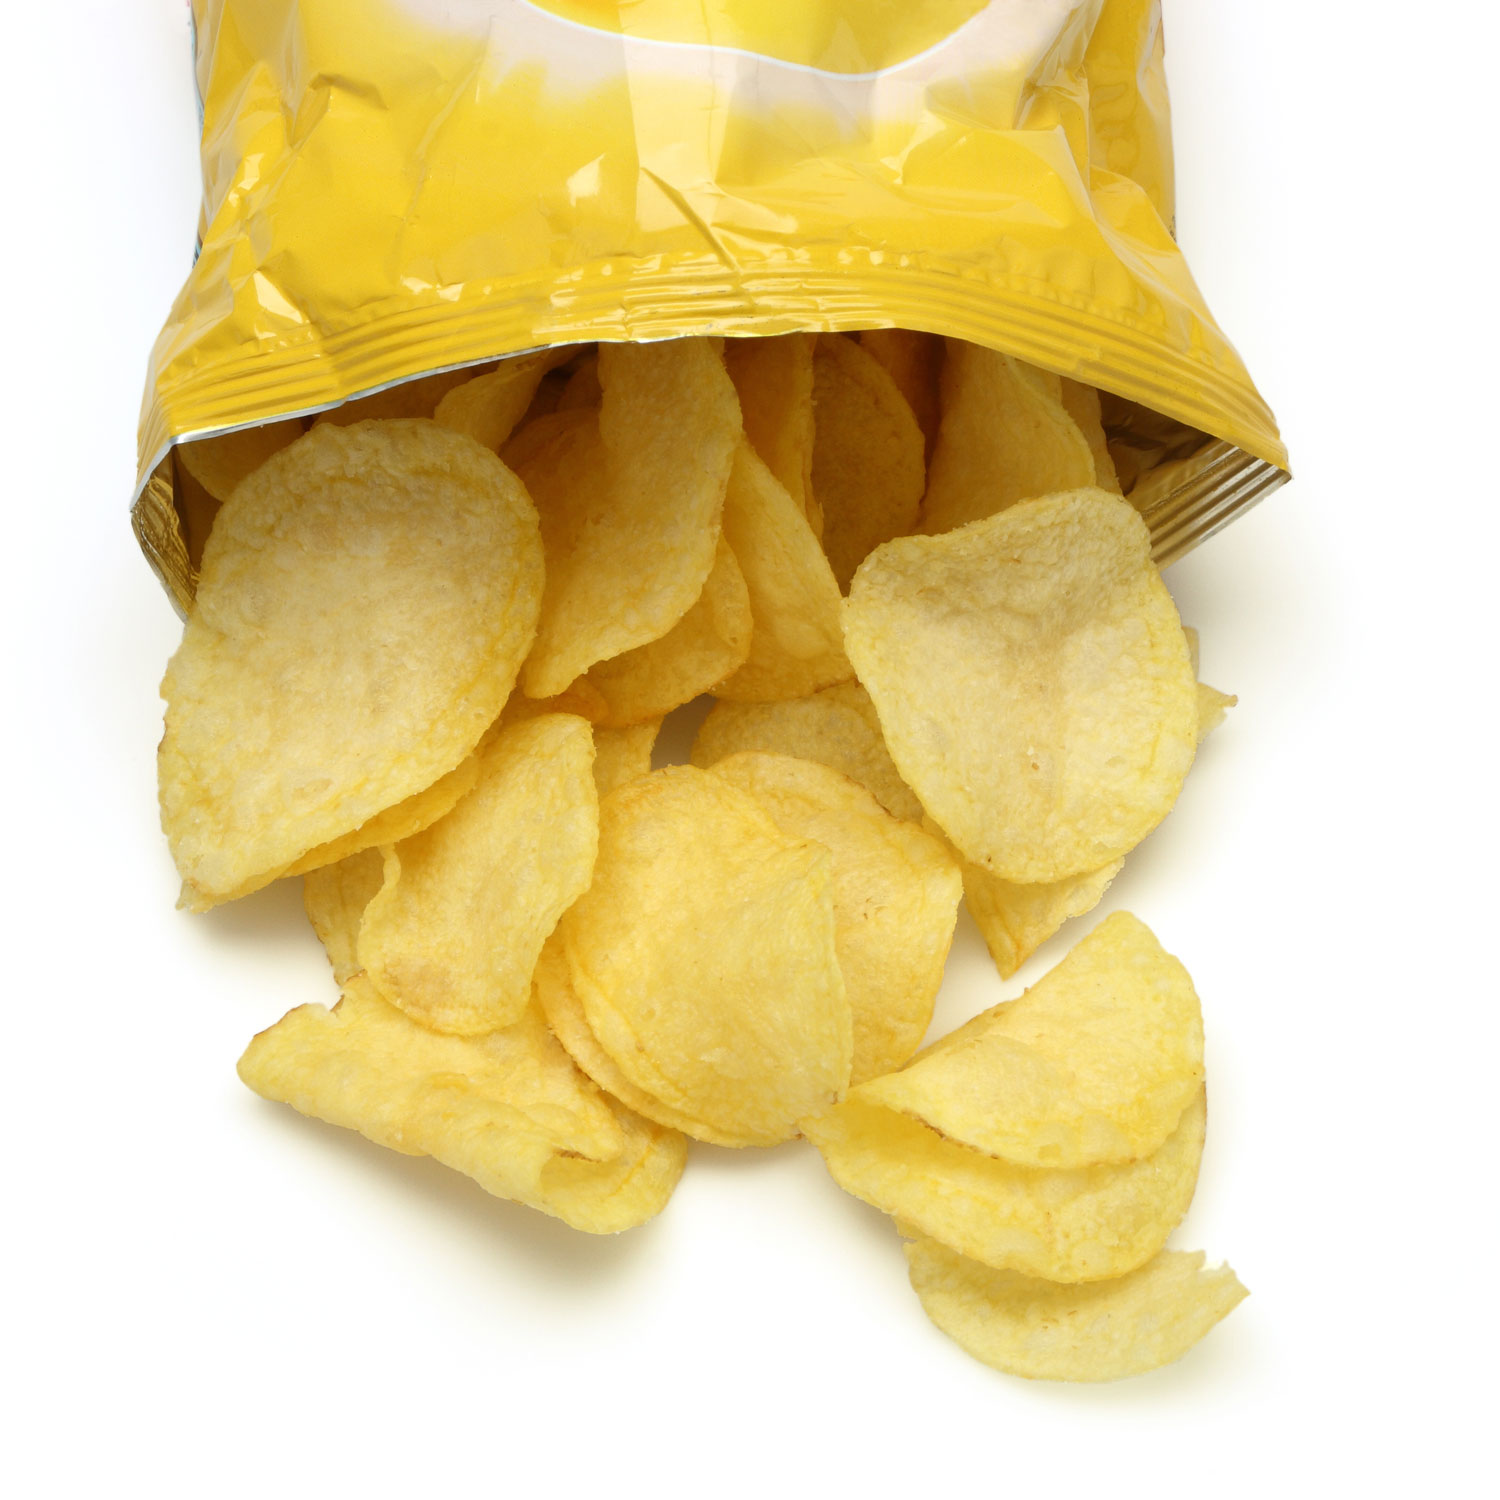 10 Surprising Foods with More Sodium Than a Bag of Chips